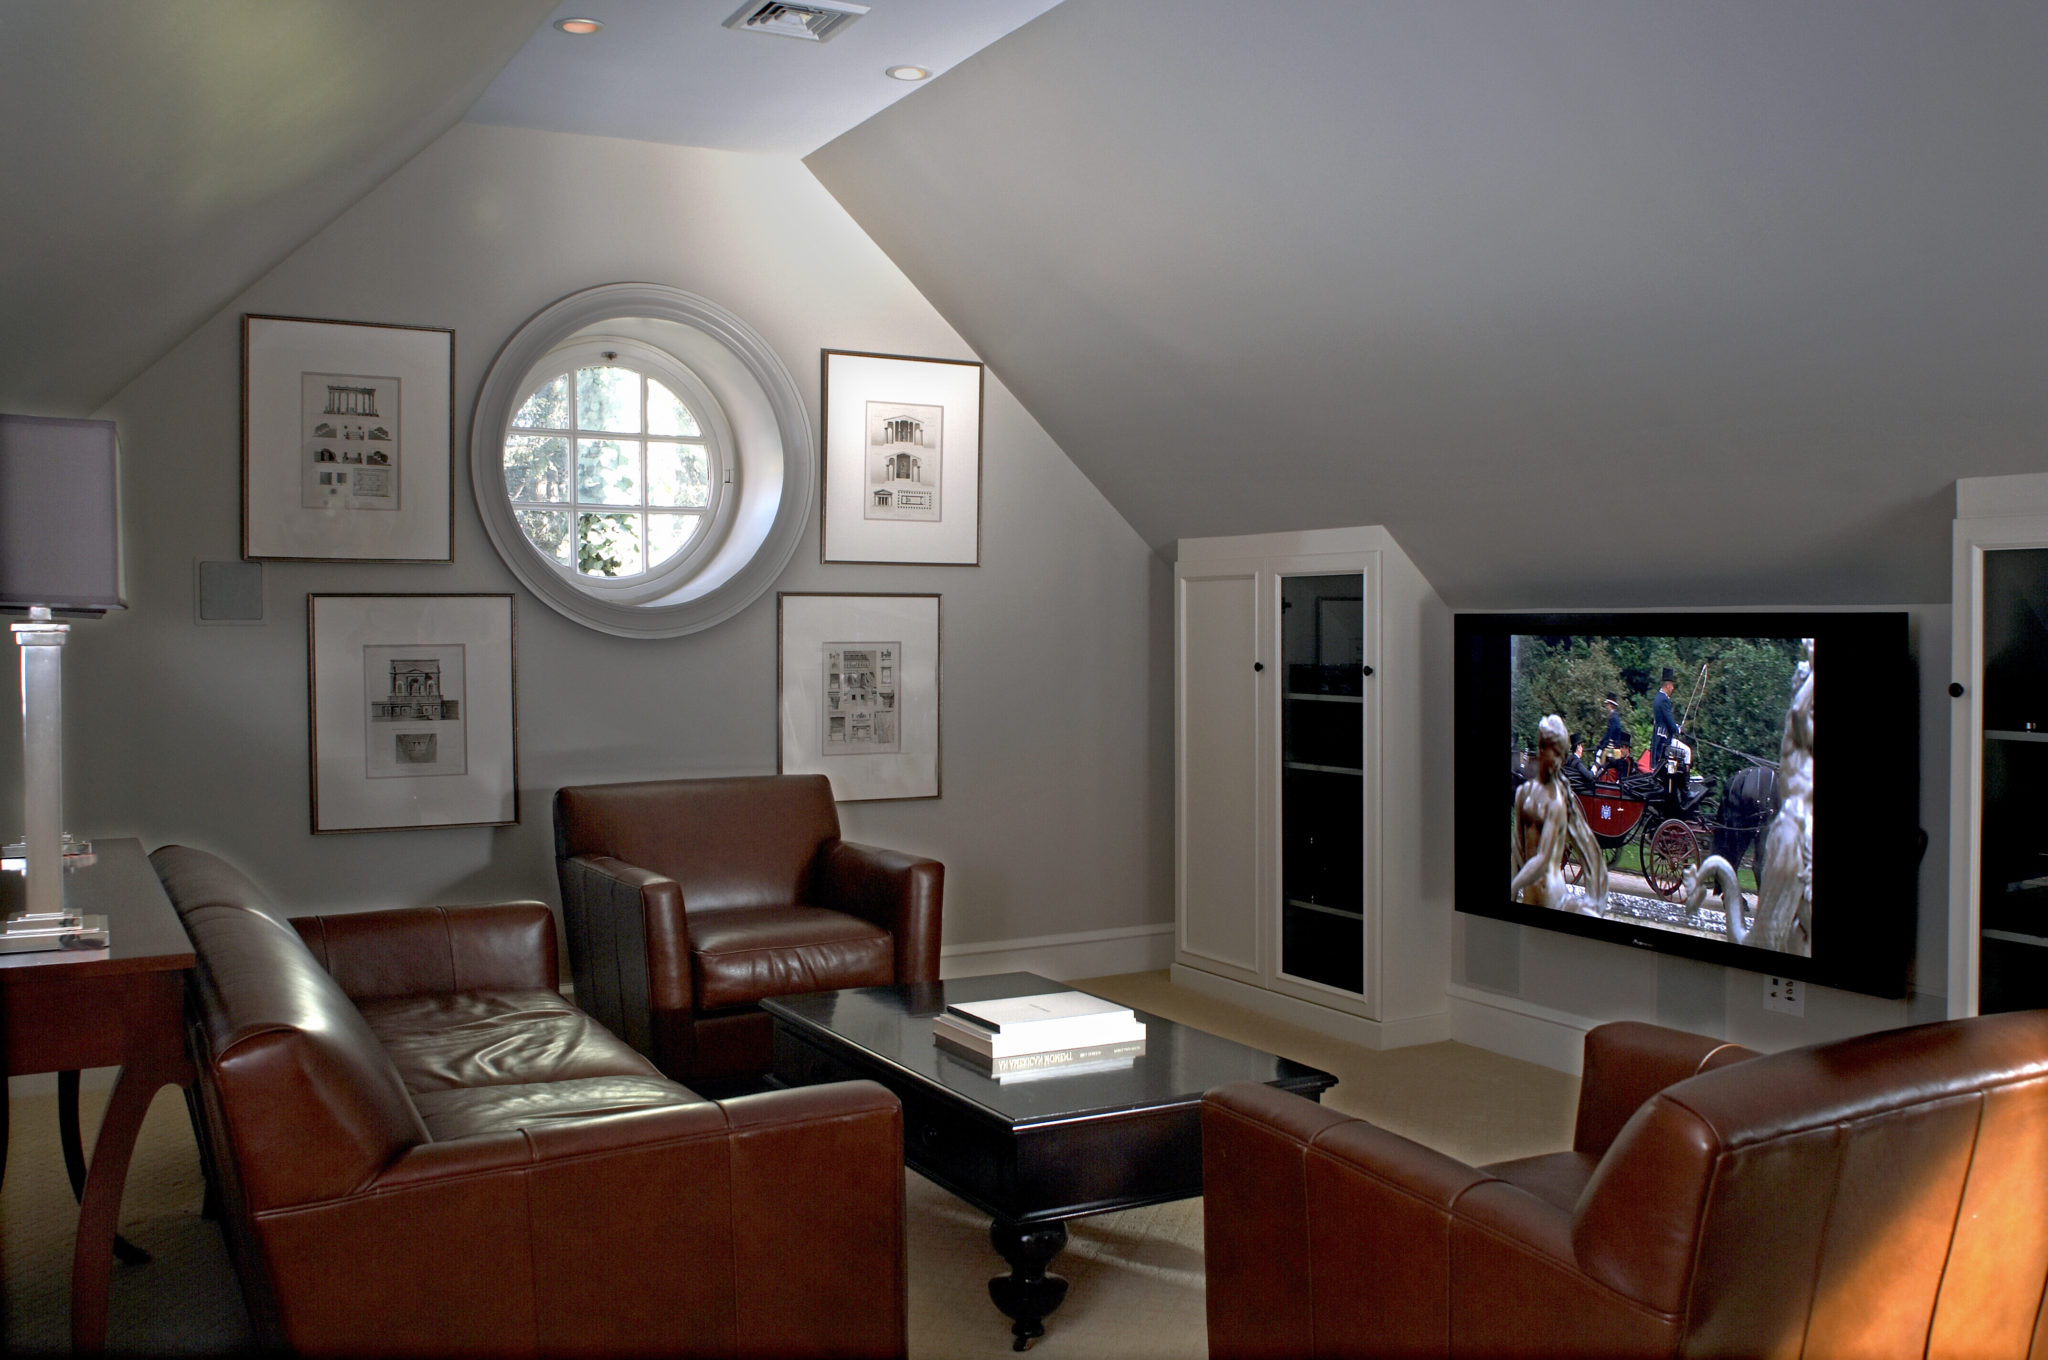 Small round window in a dim and cozy living room